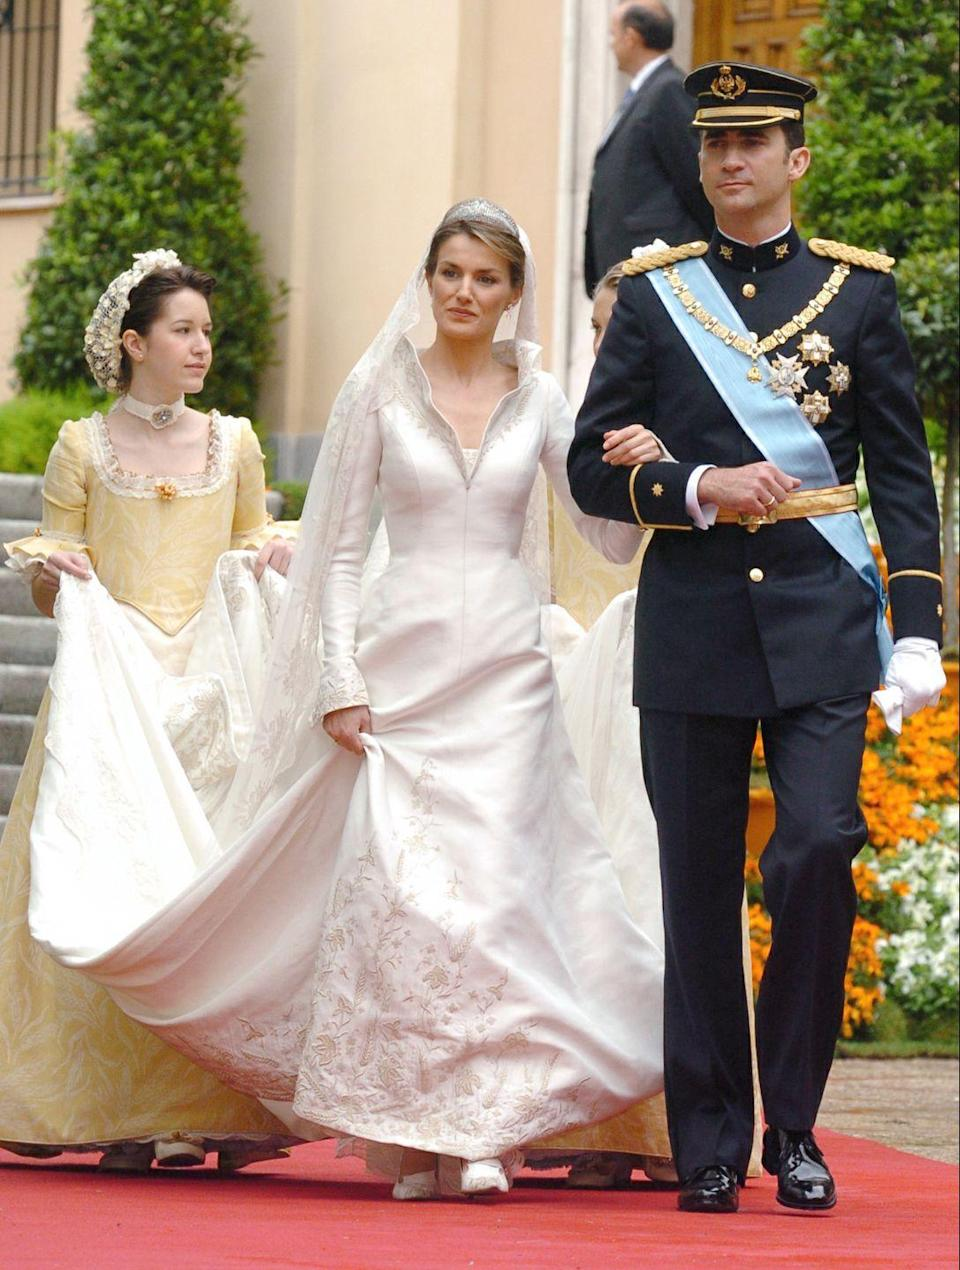 "<p>The always chic Queen Letizia walked down the aisle in a collared <span class=""redactor-unlink"">Manuel Pertegaz</span> gown that featured a stunning train.</p>"